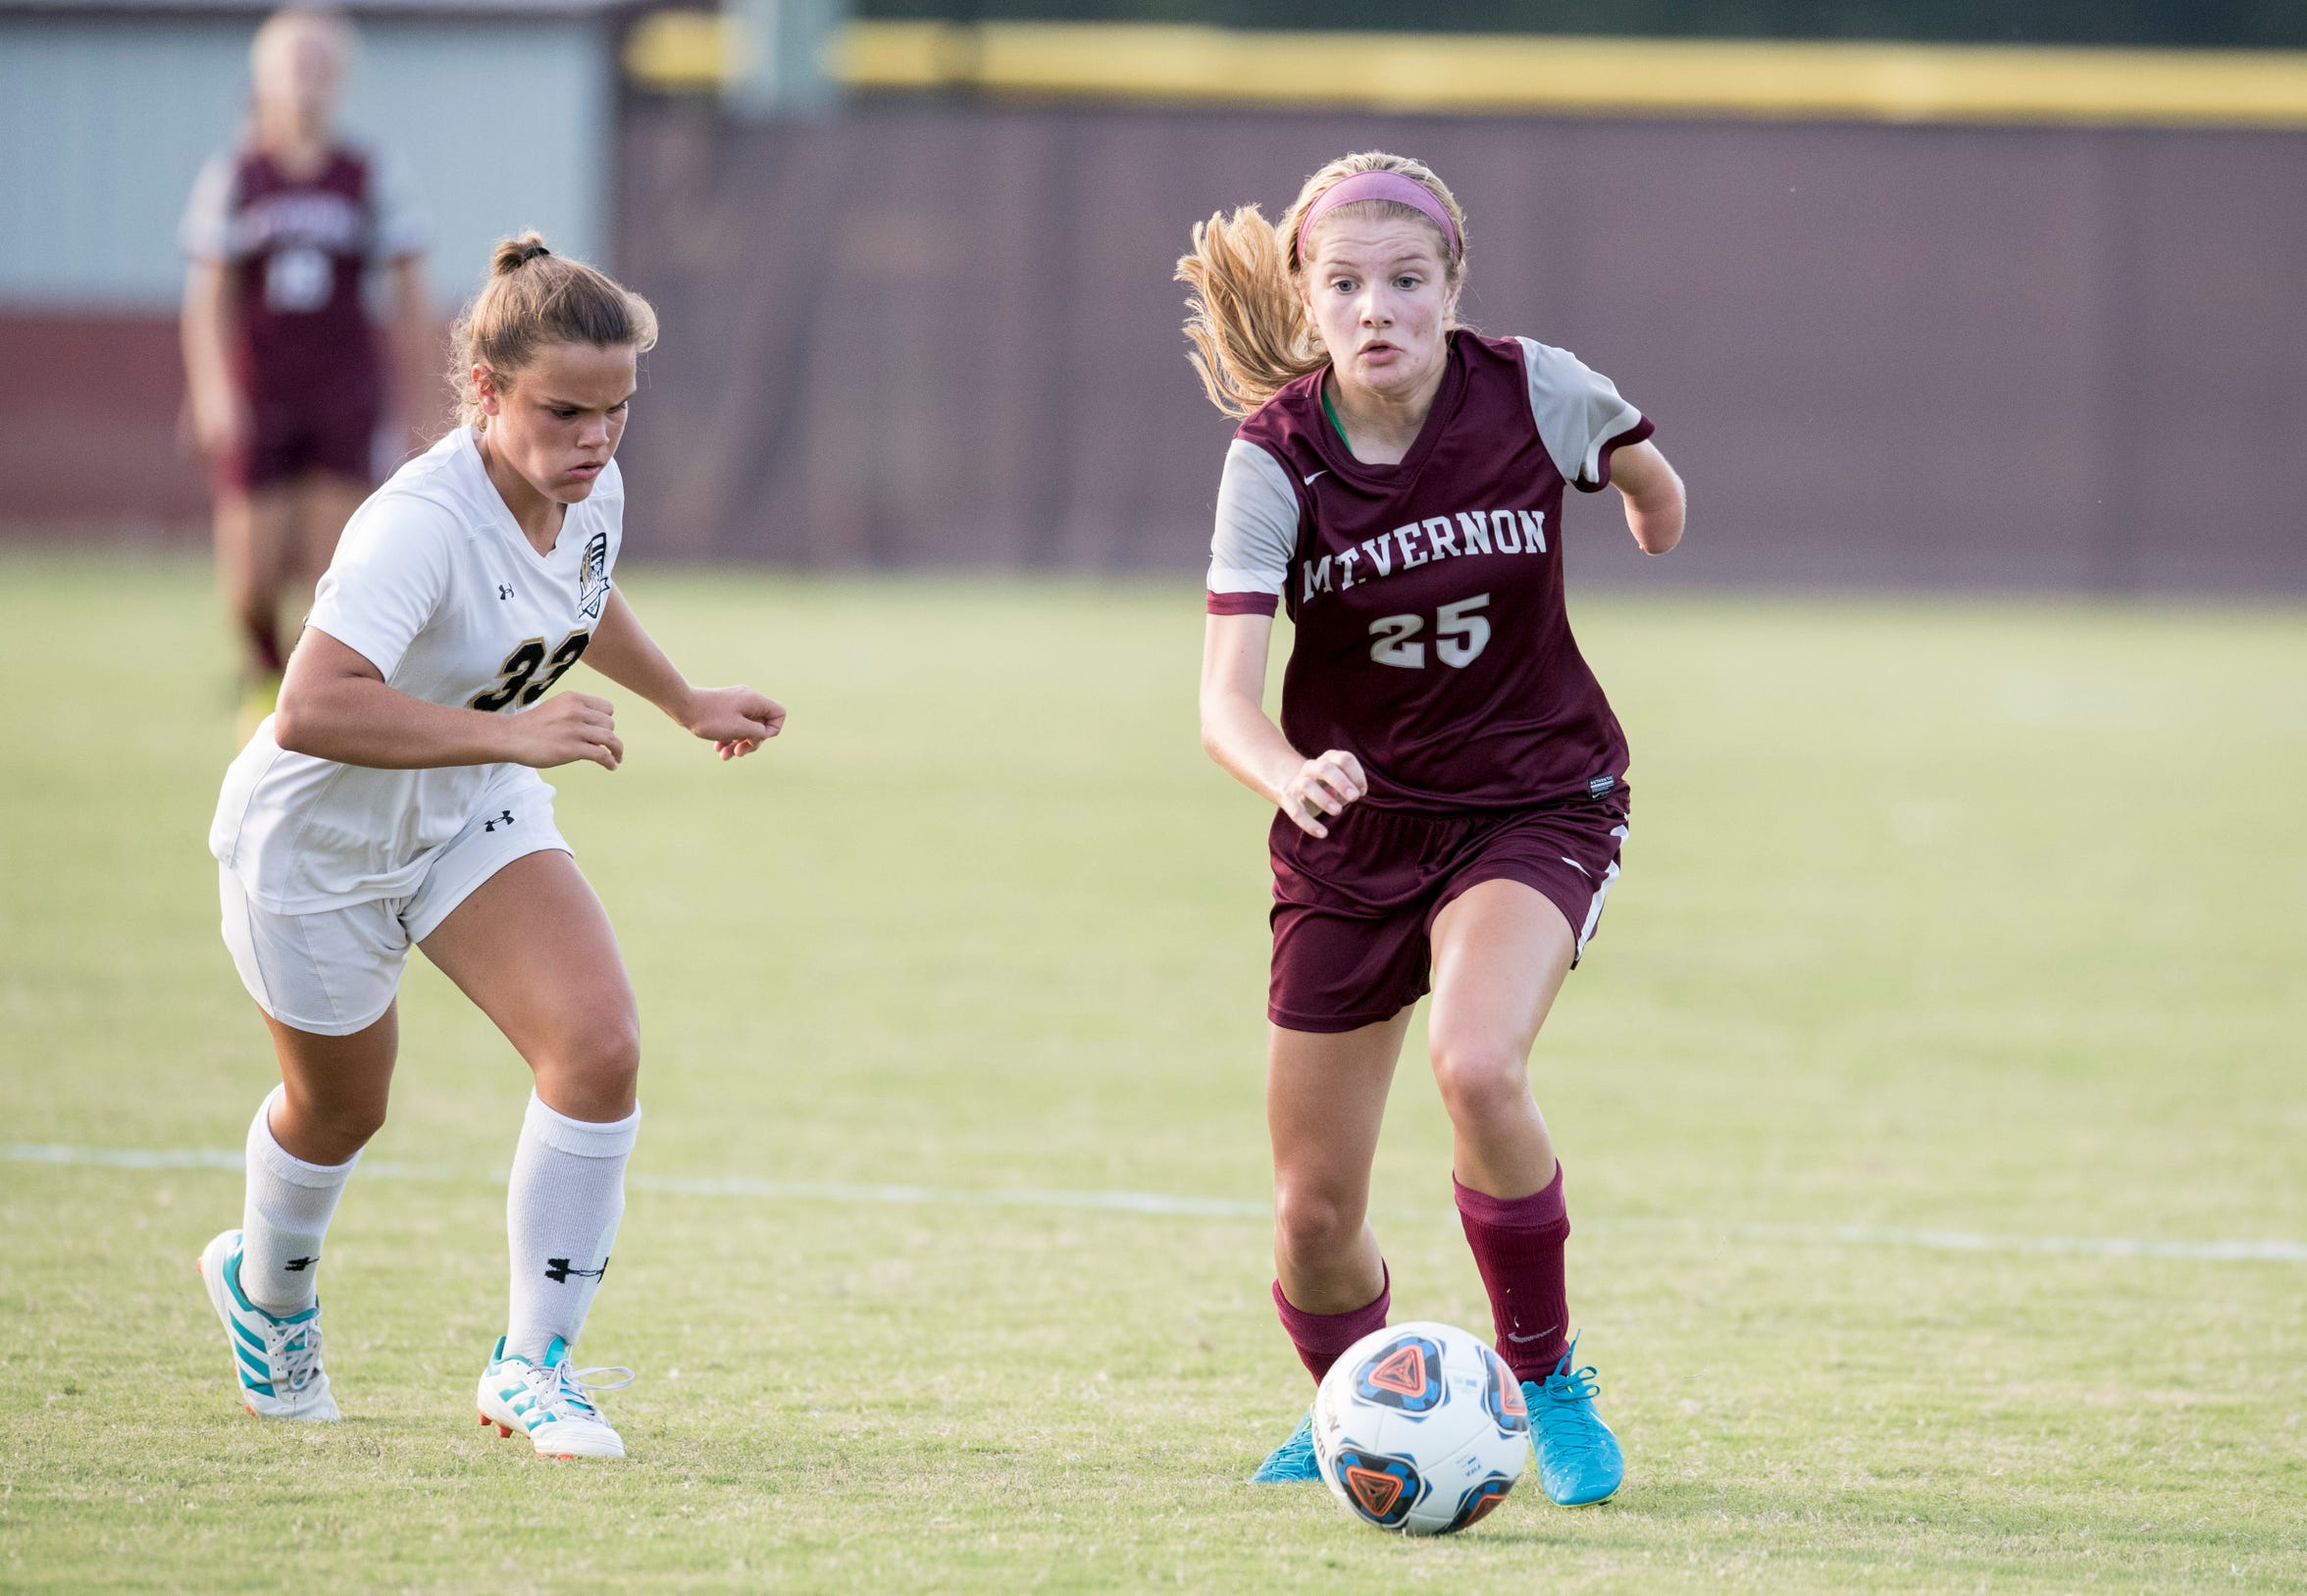 Kenzie Paul, a Junior at Mt. Vernon high school, plays forward for the girls varsity soccer team Sept. 19, 2018.